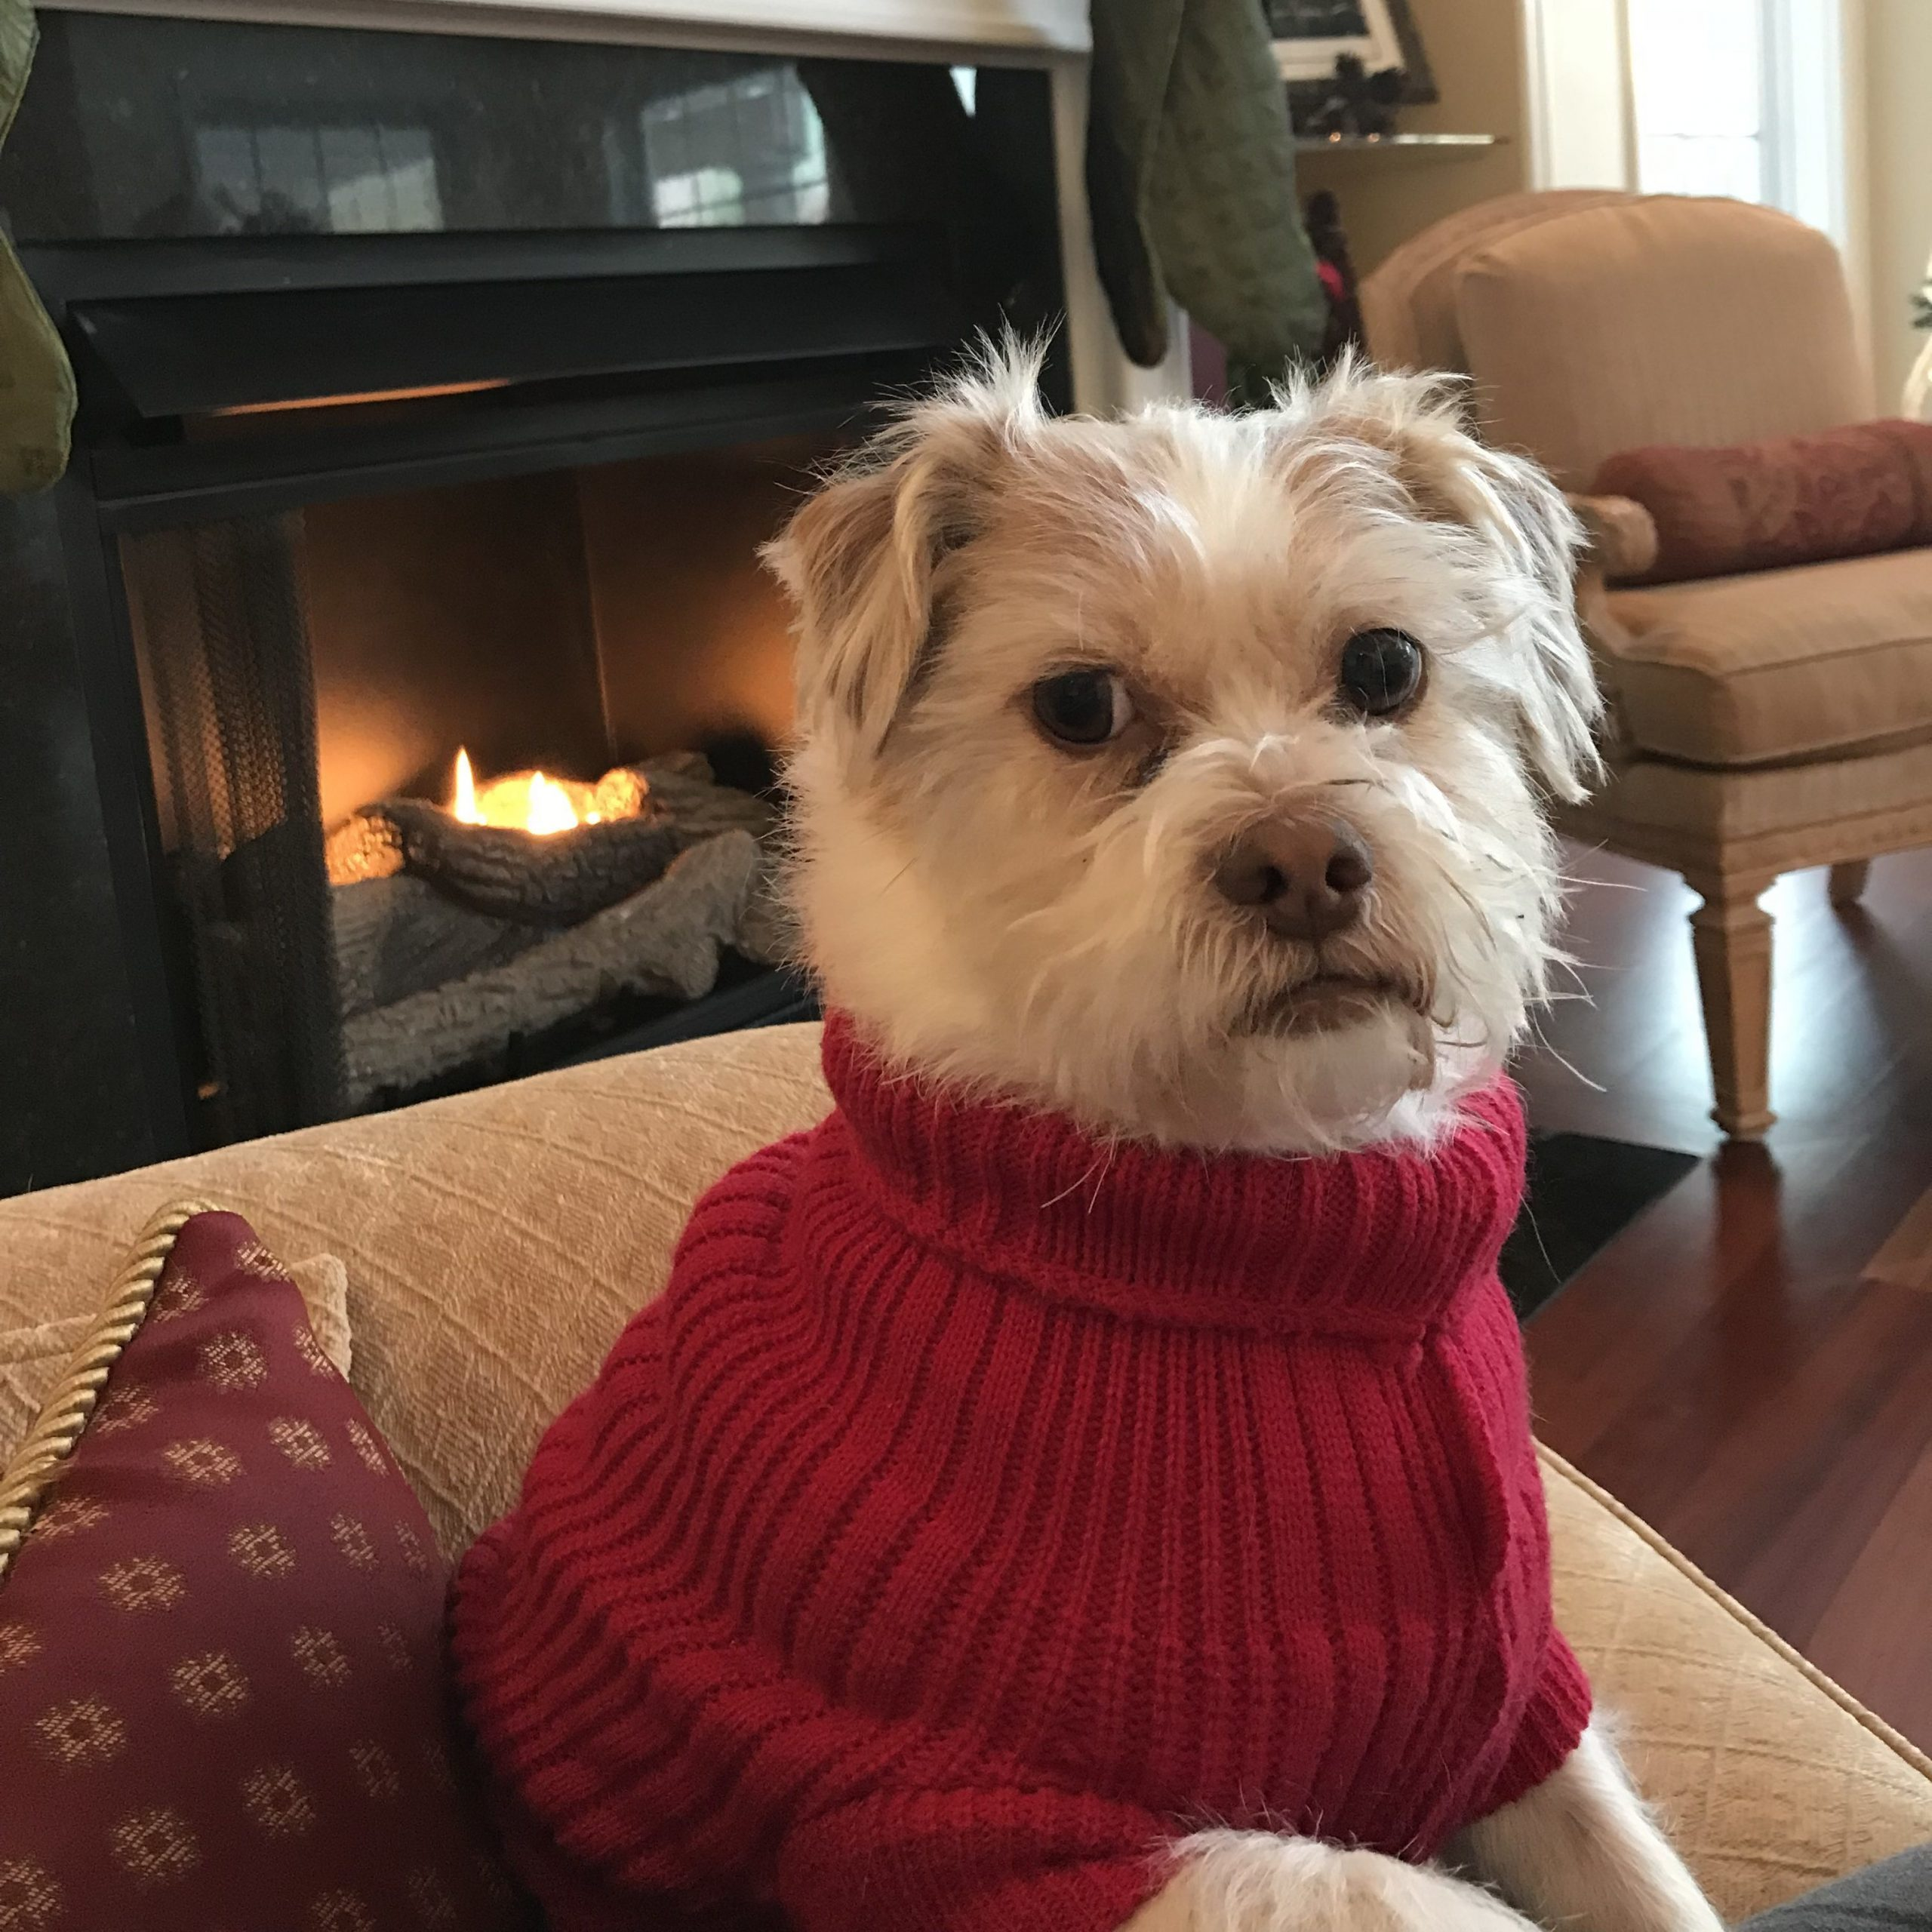 Dog in red sweater